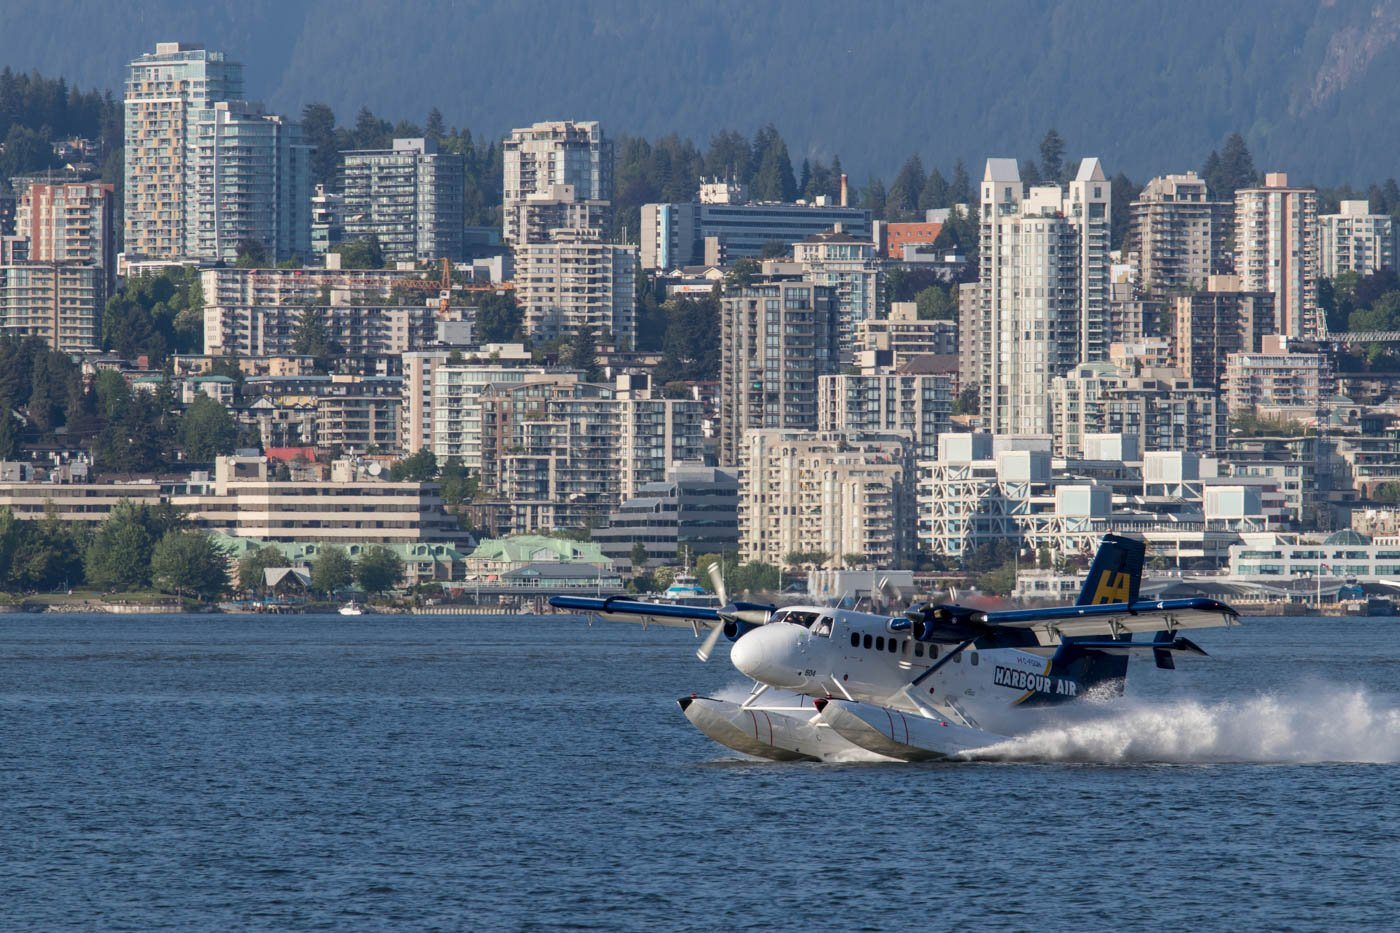 Harbour Air de Havilland Canada DHC-6 Twin Otter